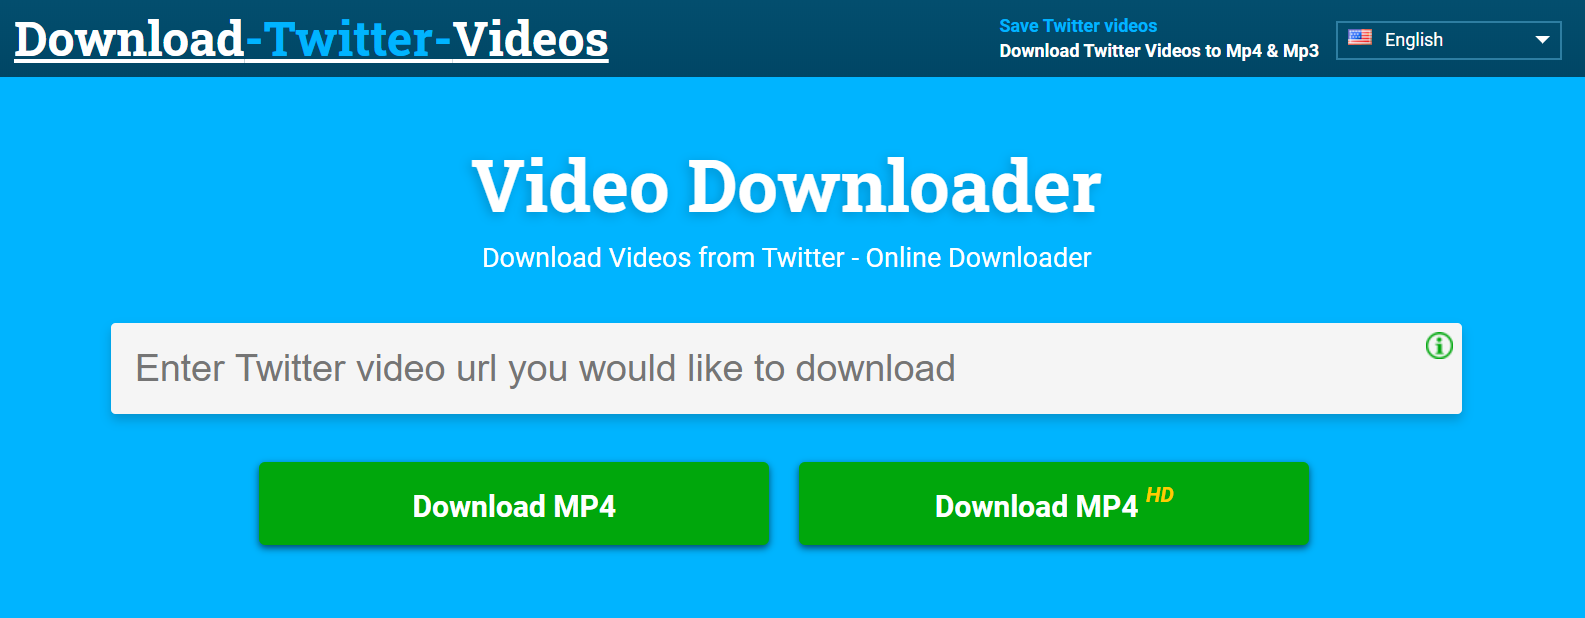 download-twitter-video-win